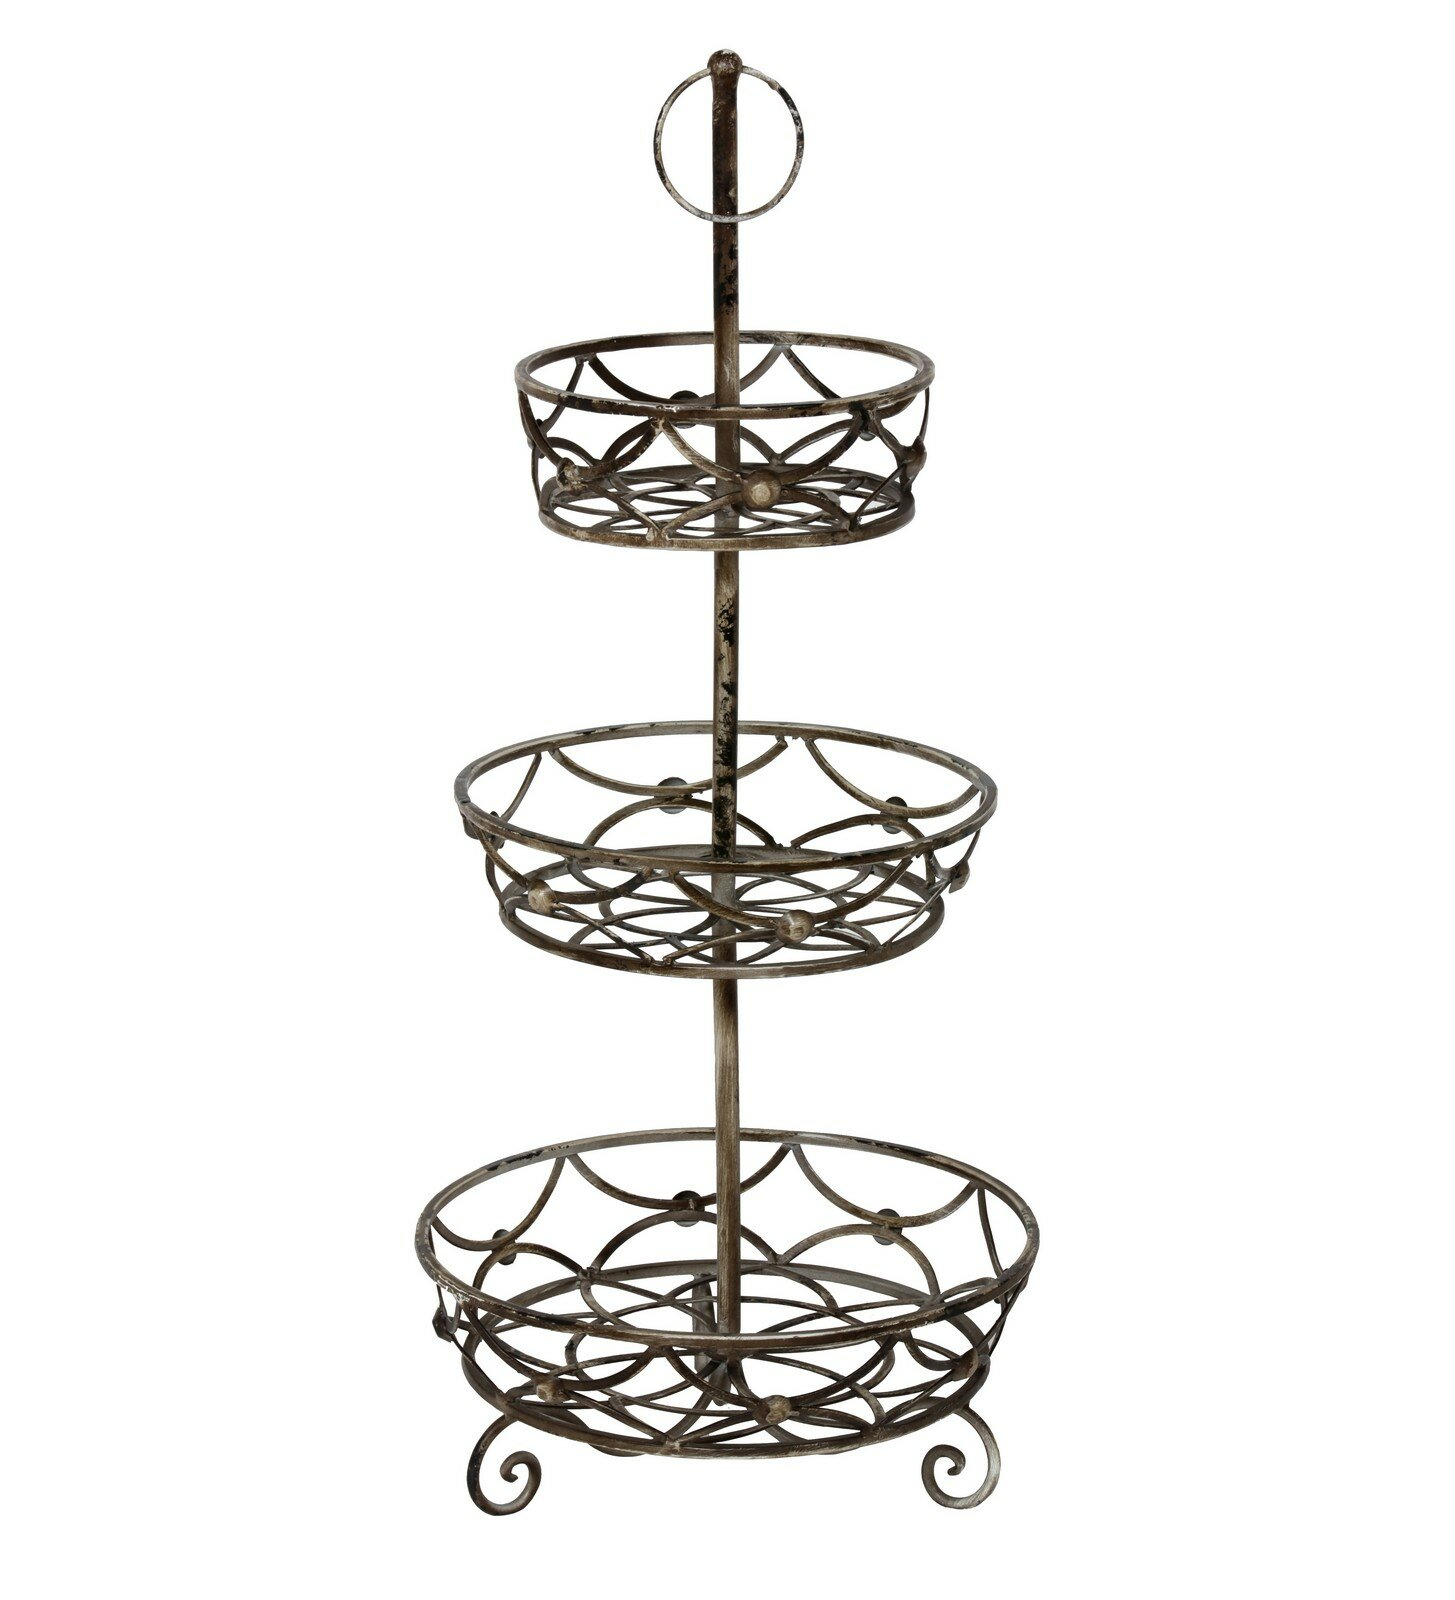 new iron 3 tier scroll basket stand 30 decorative metal fruit veggie storage ebay. Black Bedroom Furniture Sets. Home Design Ideas